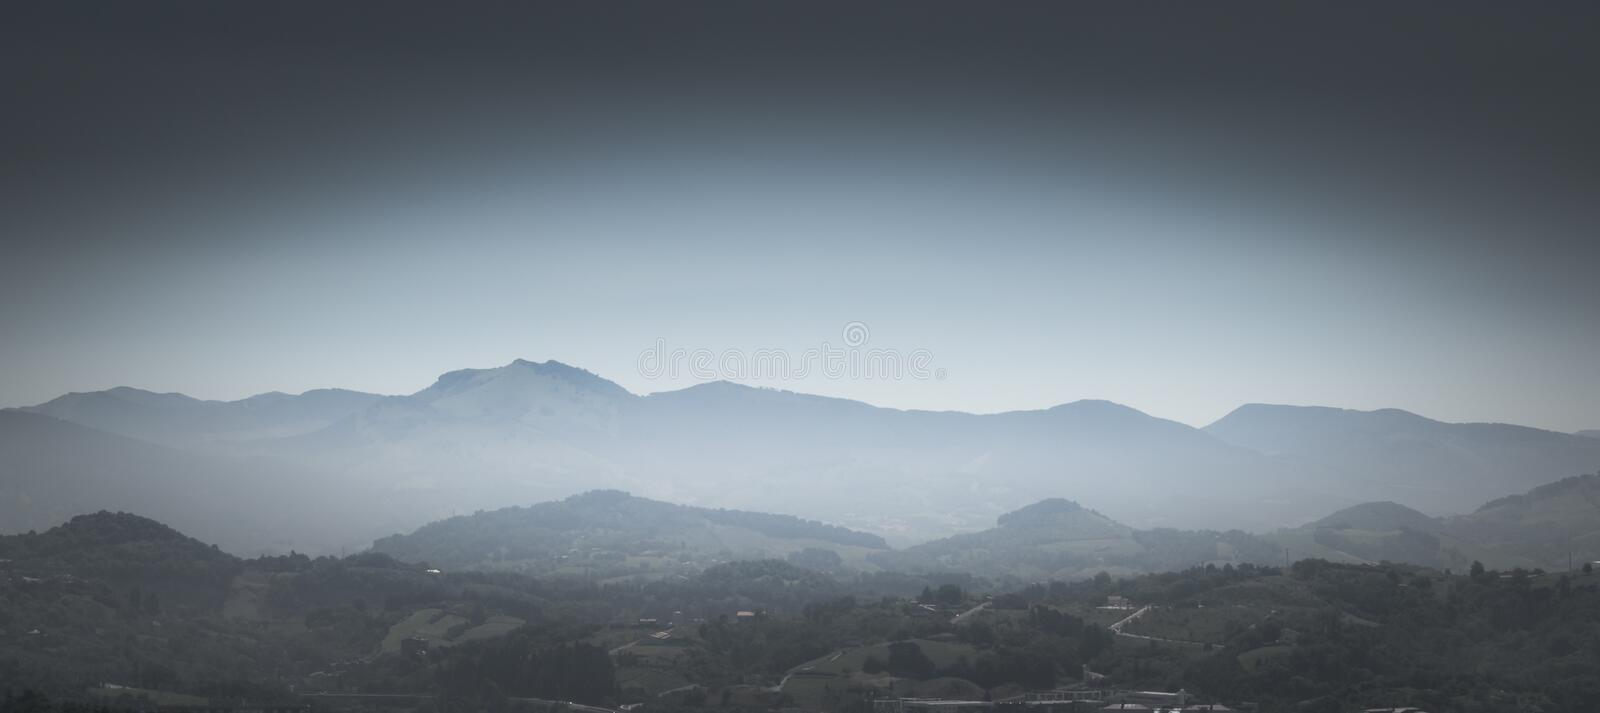 Greyscale Photo of Mountains With Mist royalty free stock photography